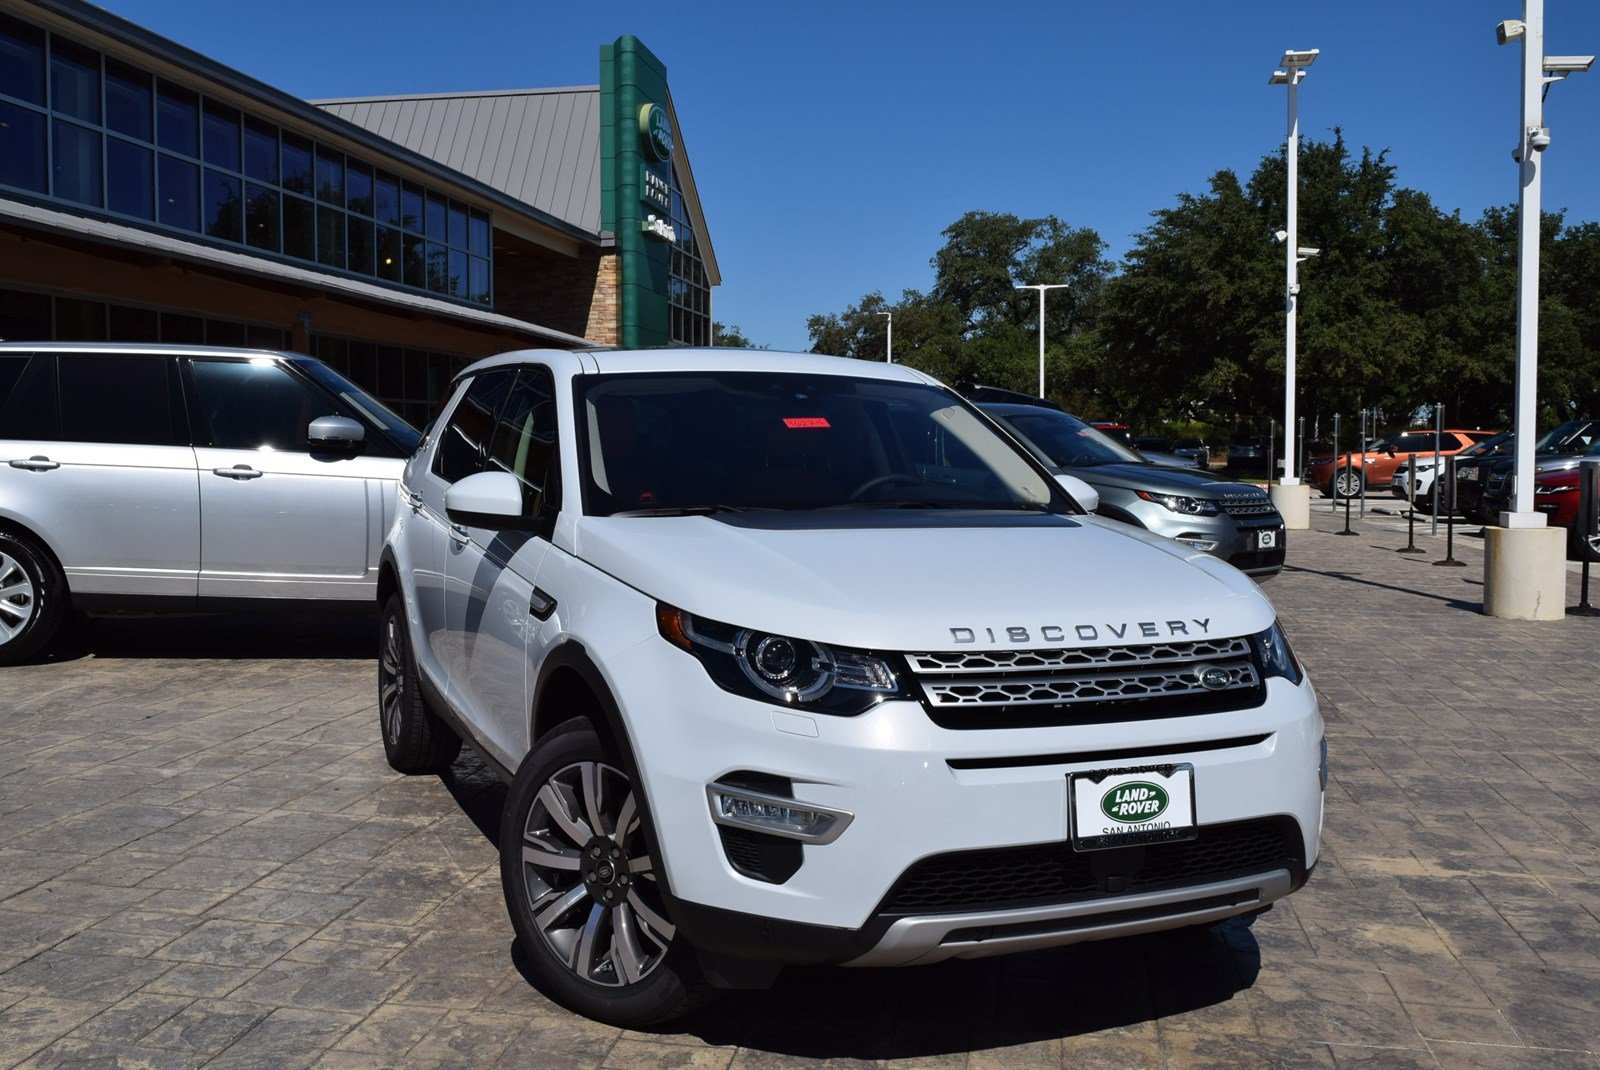 88 Gallery of 2019 Land Rover Lr4 Specs with 2019 Land Rover Lr4